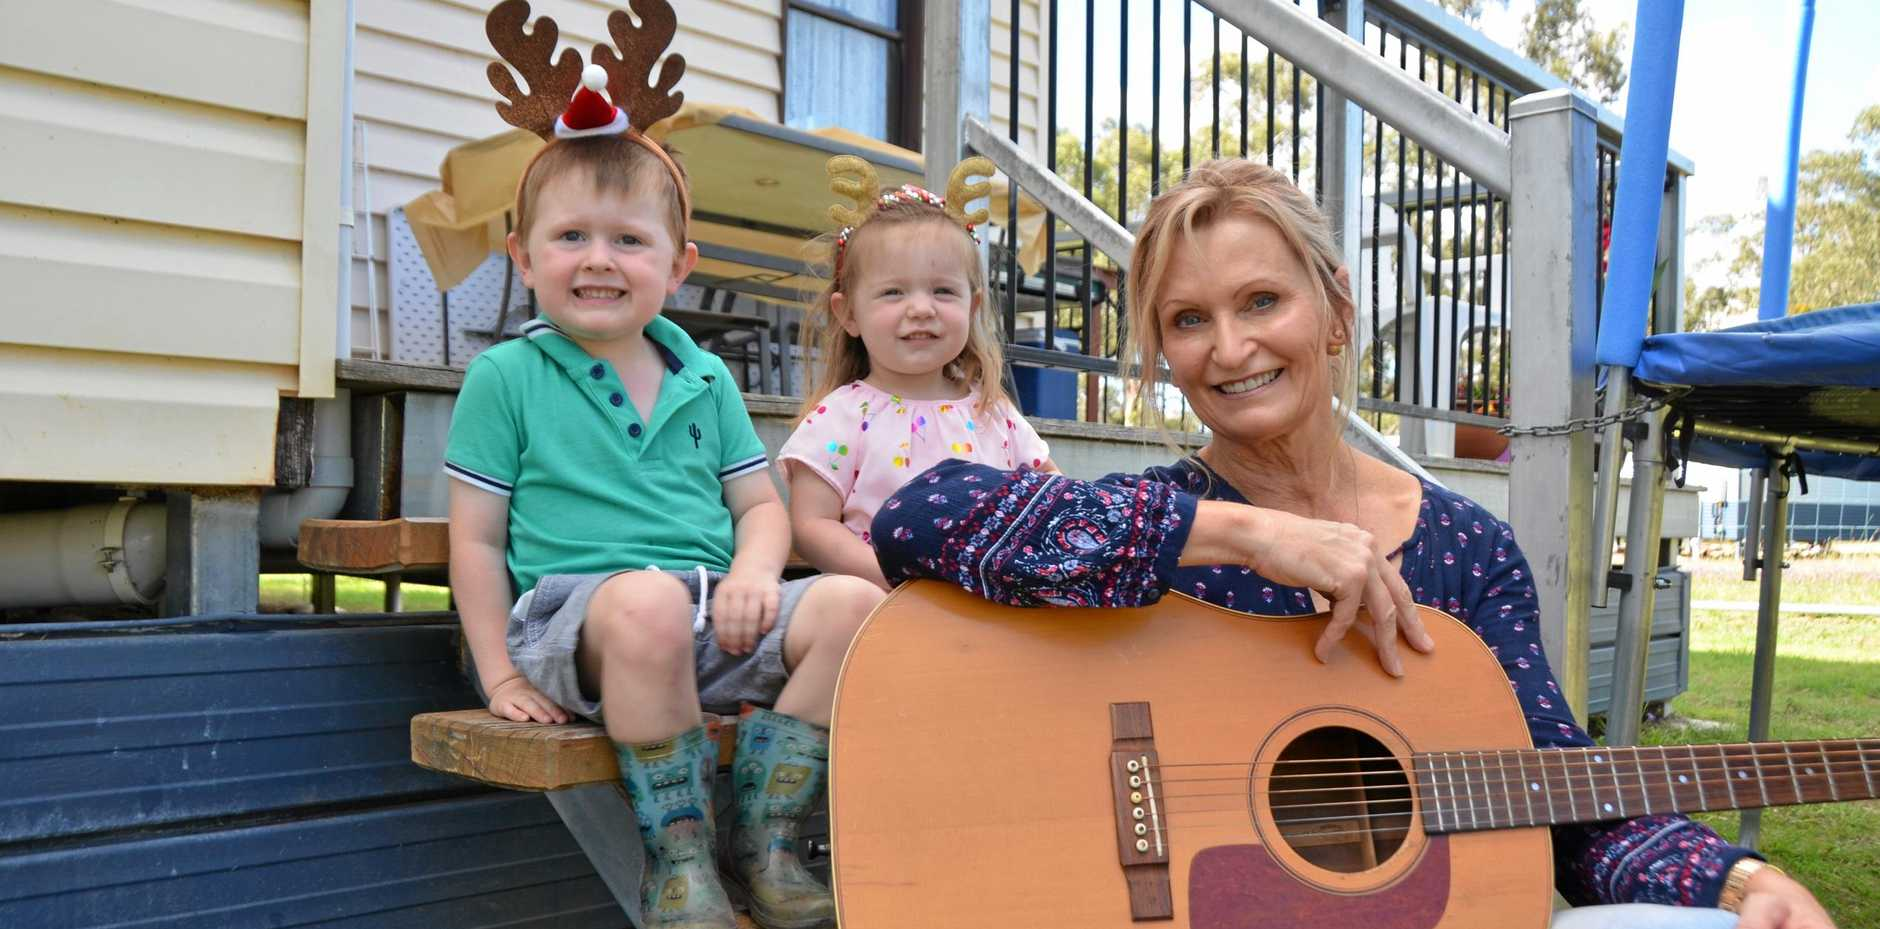 FAMILY'S IN TUNE: Warwick Carols in the Park musical director Erin Hilton and grandchildren Declan and Isla Ryan will all be attending the event on Sunday.